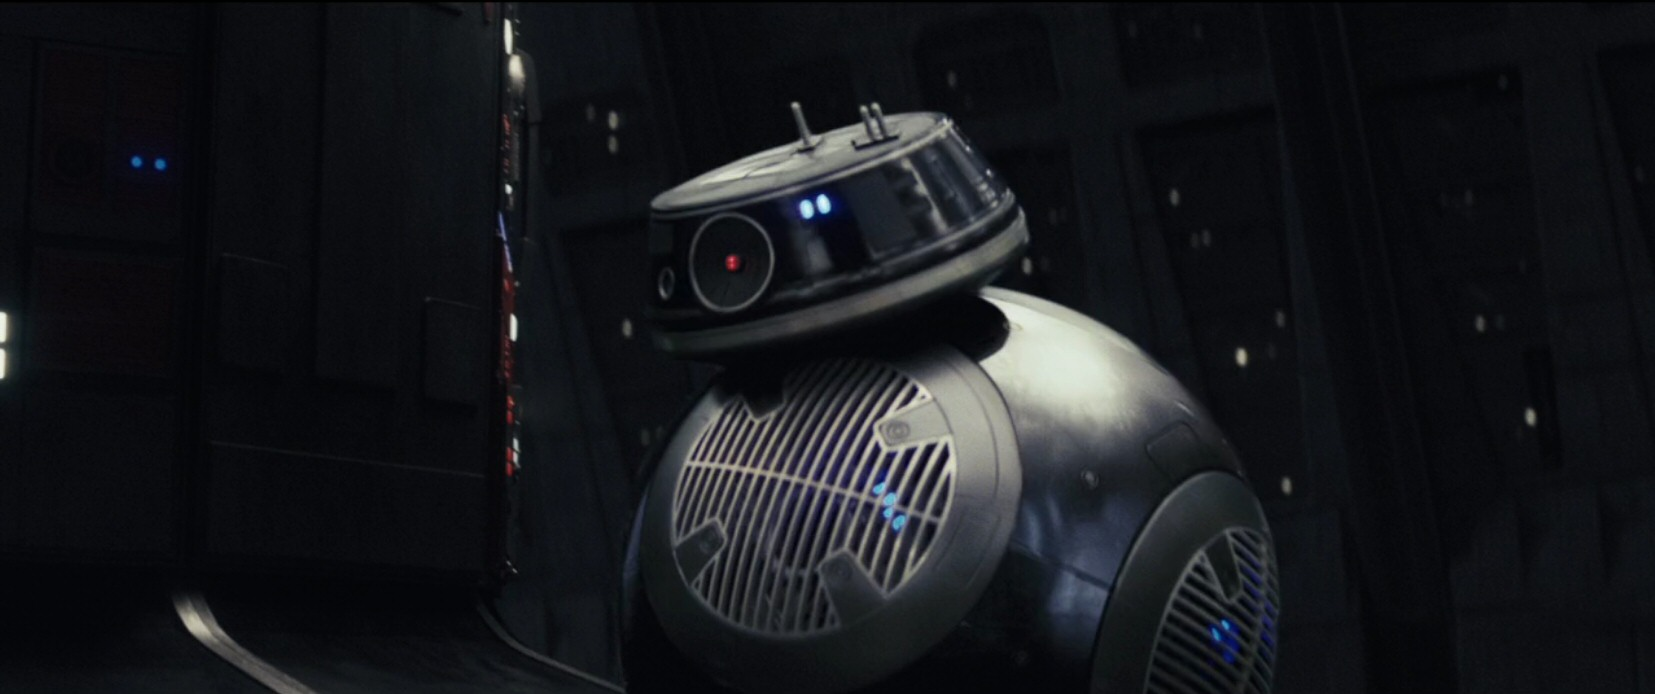 Search your feelings, BB-8. I am your father.